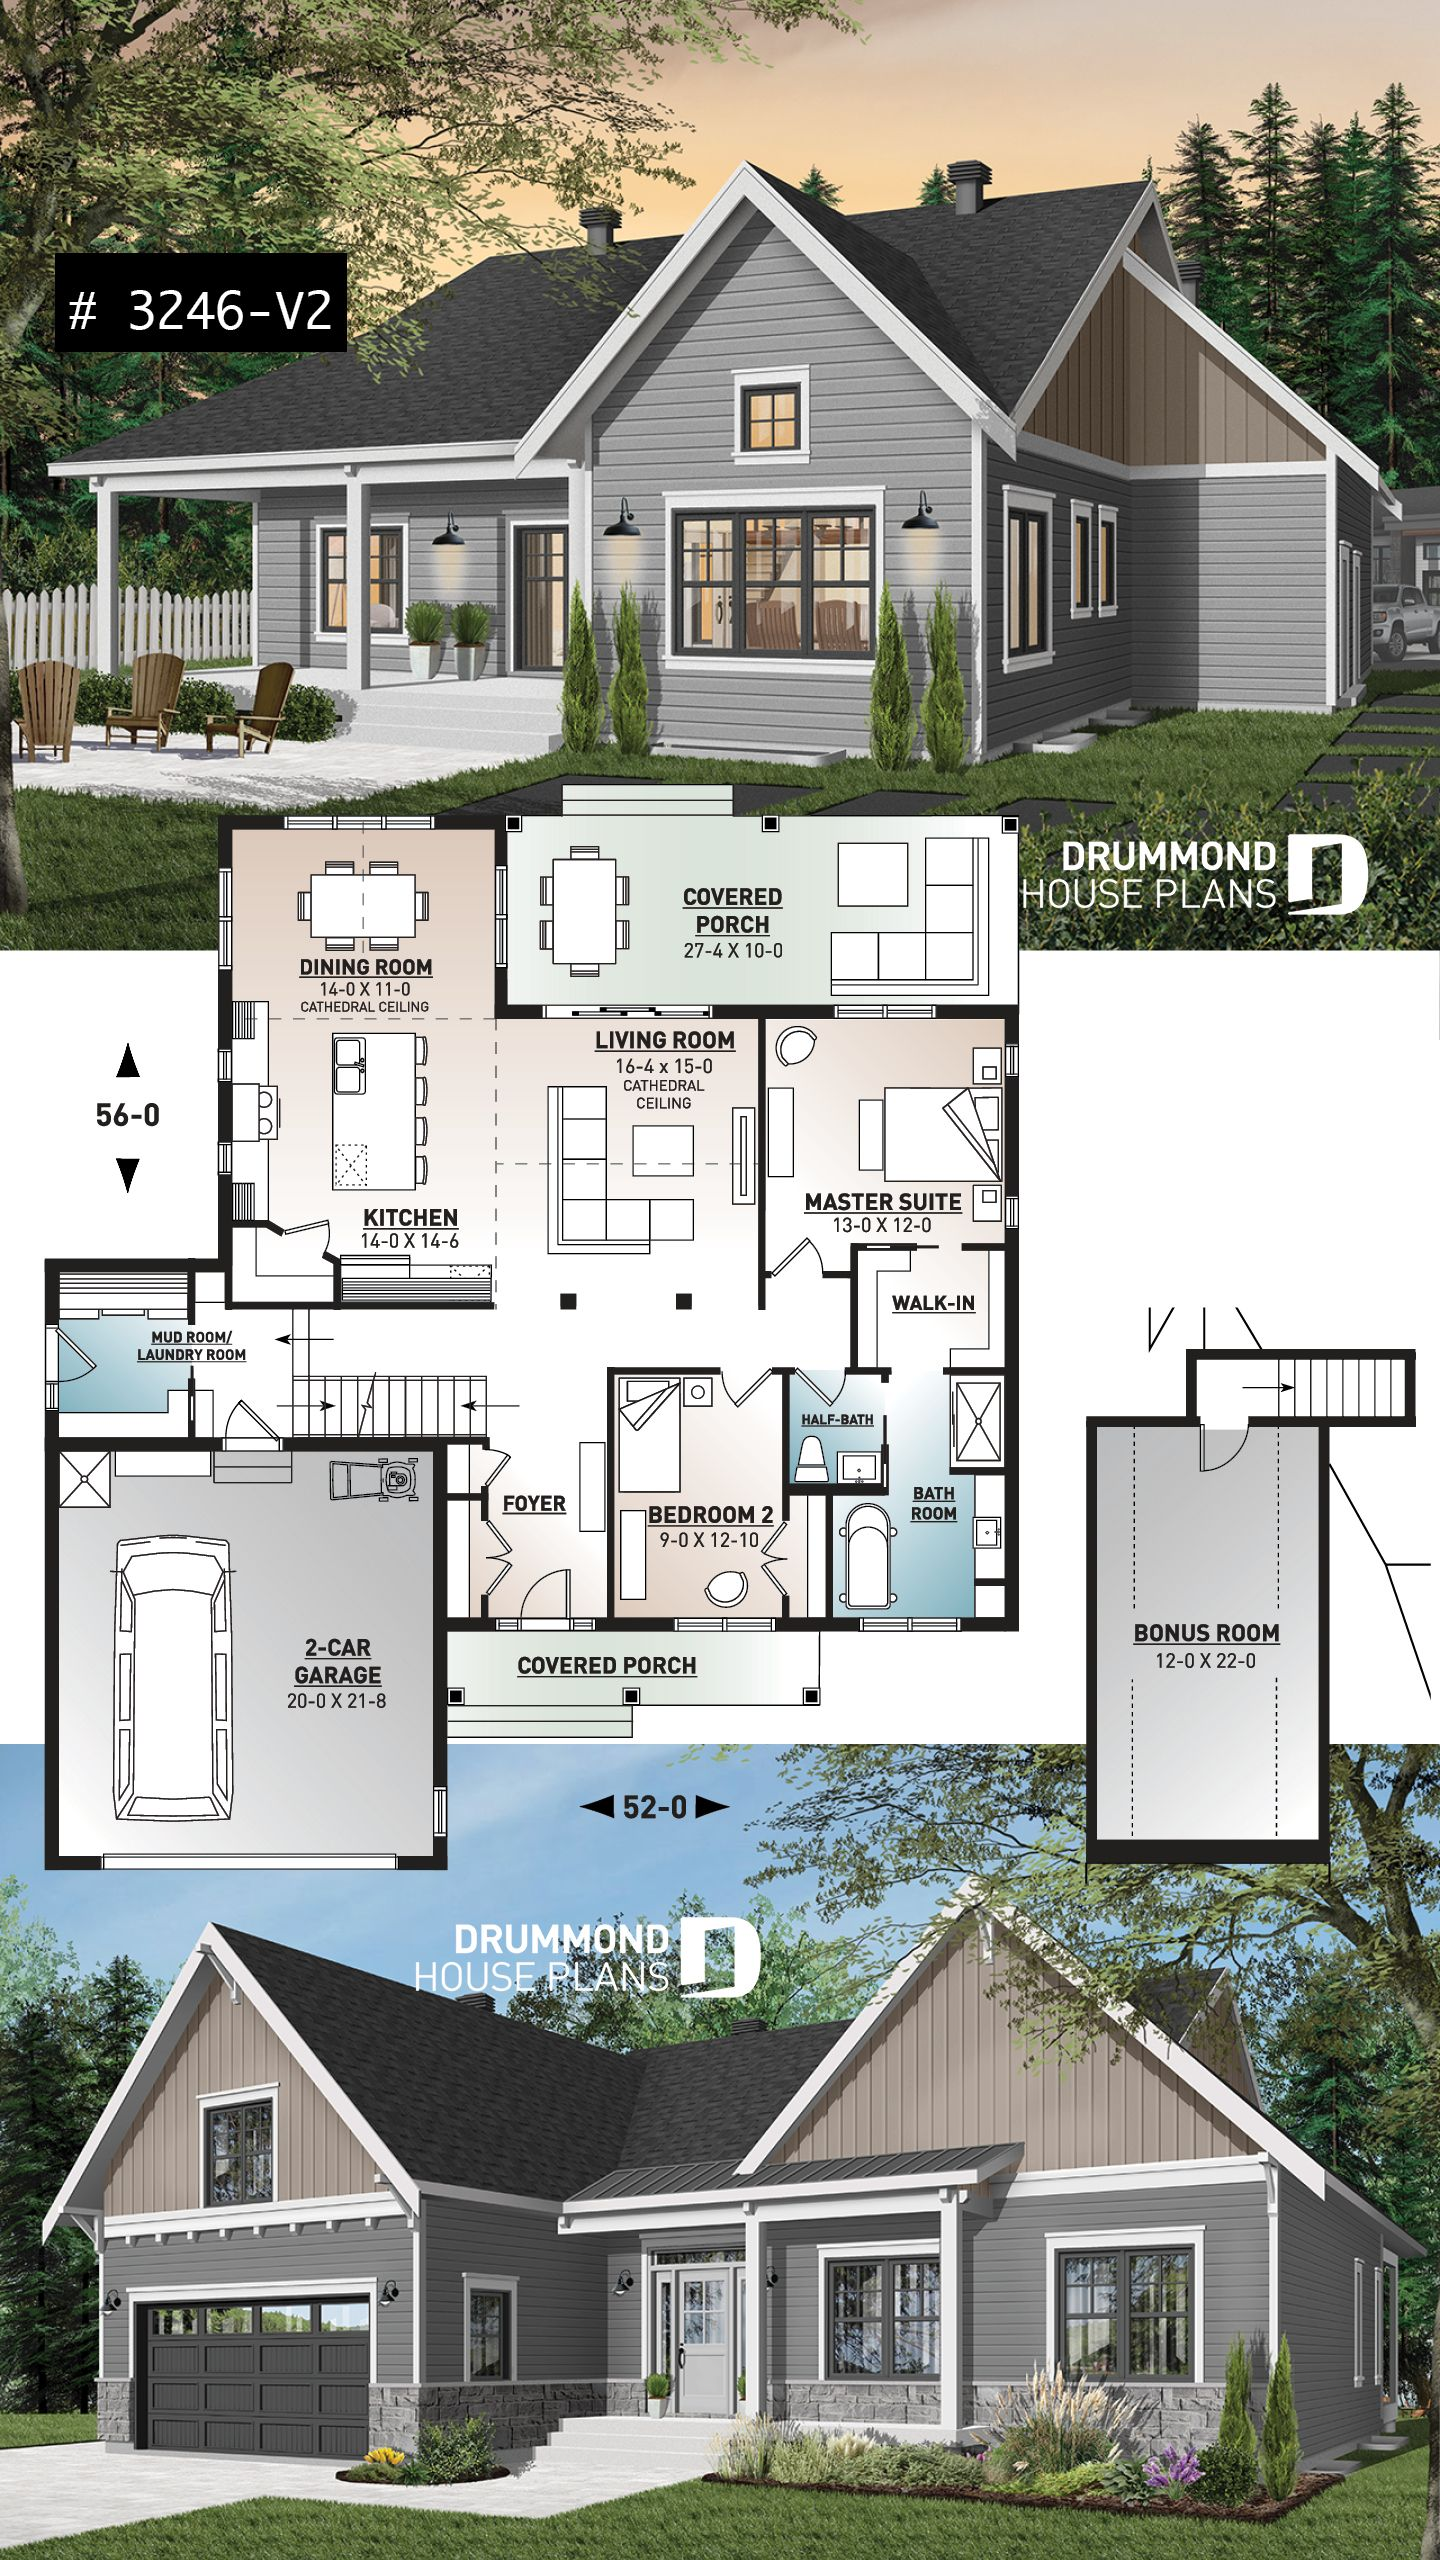 Discover The Plan 3246 V2 Jennifer Which Will Please You For Its 2 Bedrooms And For Its Country Styles Basement House Plans Drummond House Plans Ranch House Plans